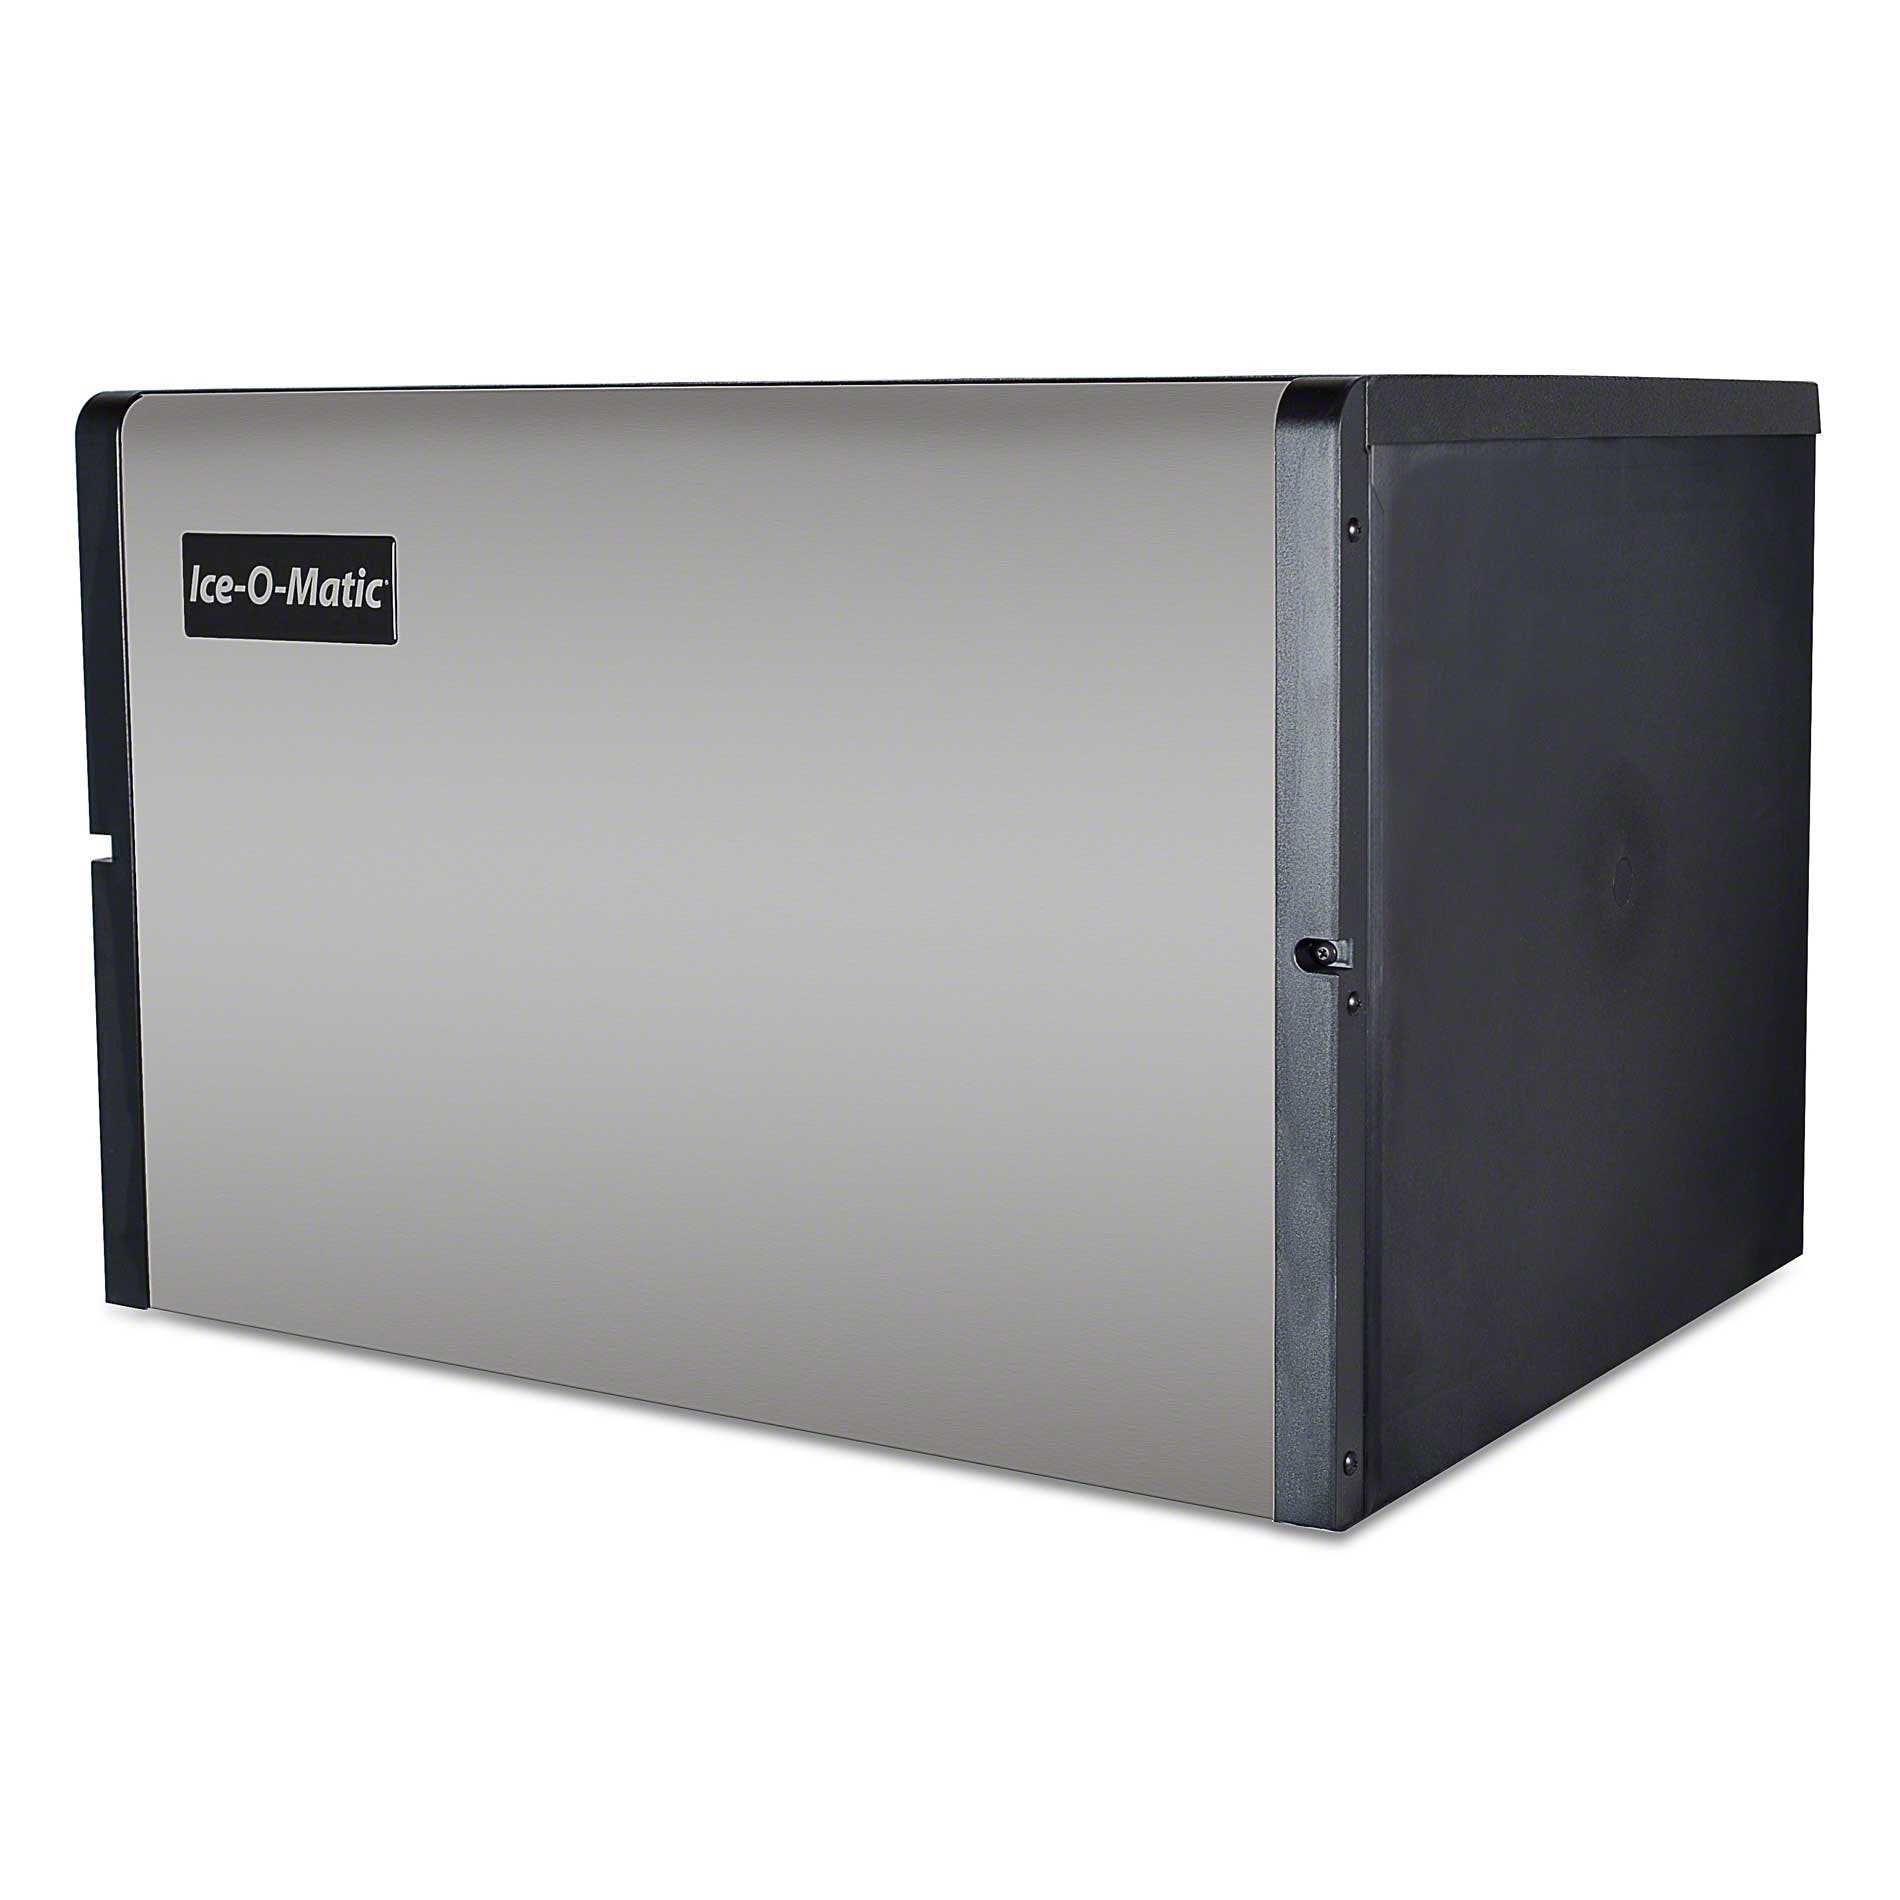 Ice-O-Matic - ICE0400FW 496 lb Full Cube Ice Machine Ice machine sold by Food Service Warehouse